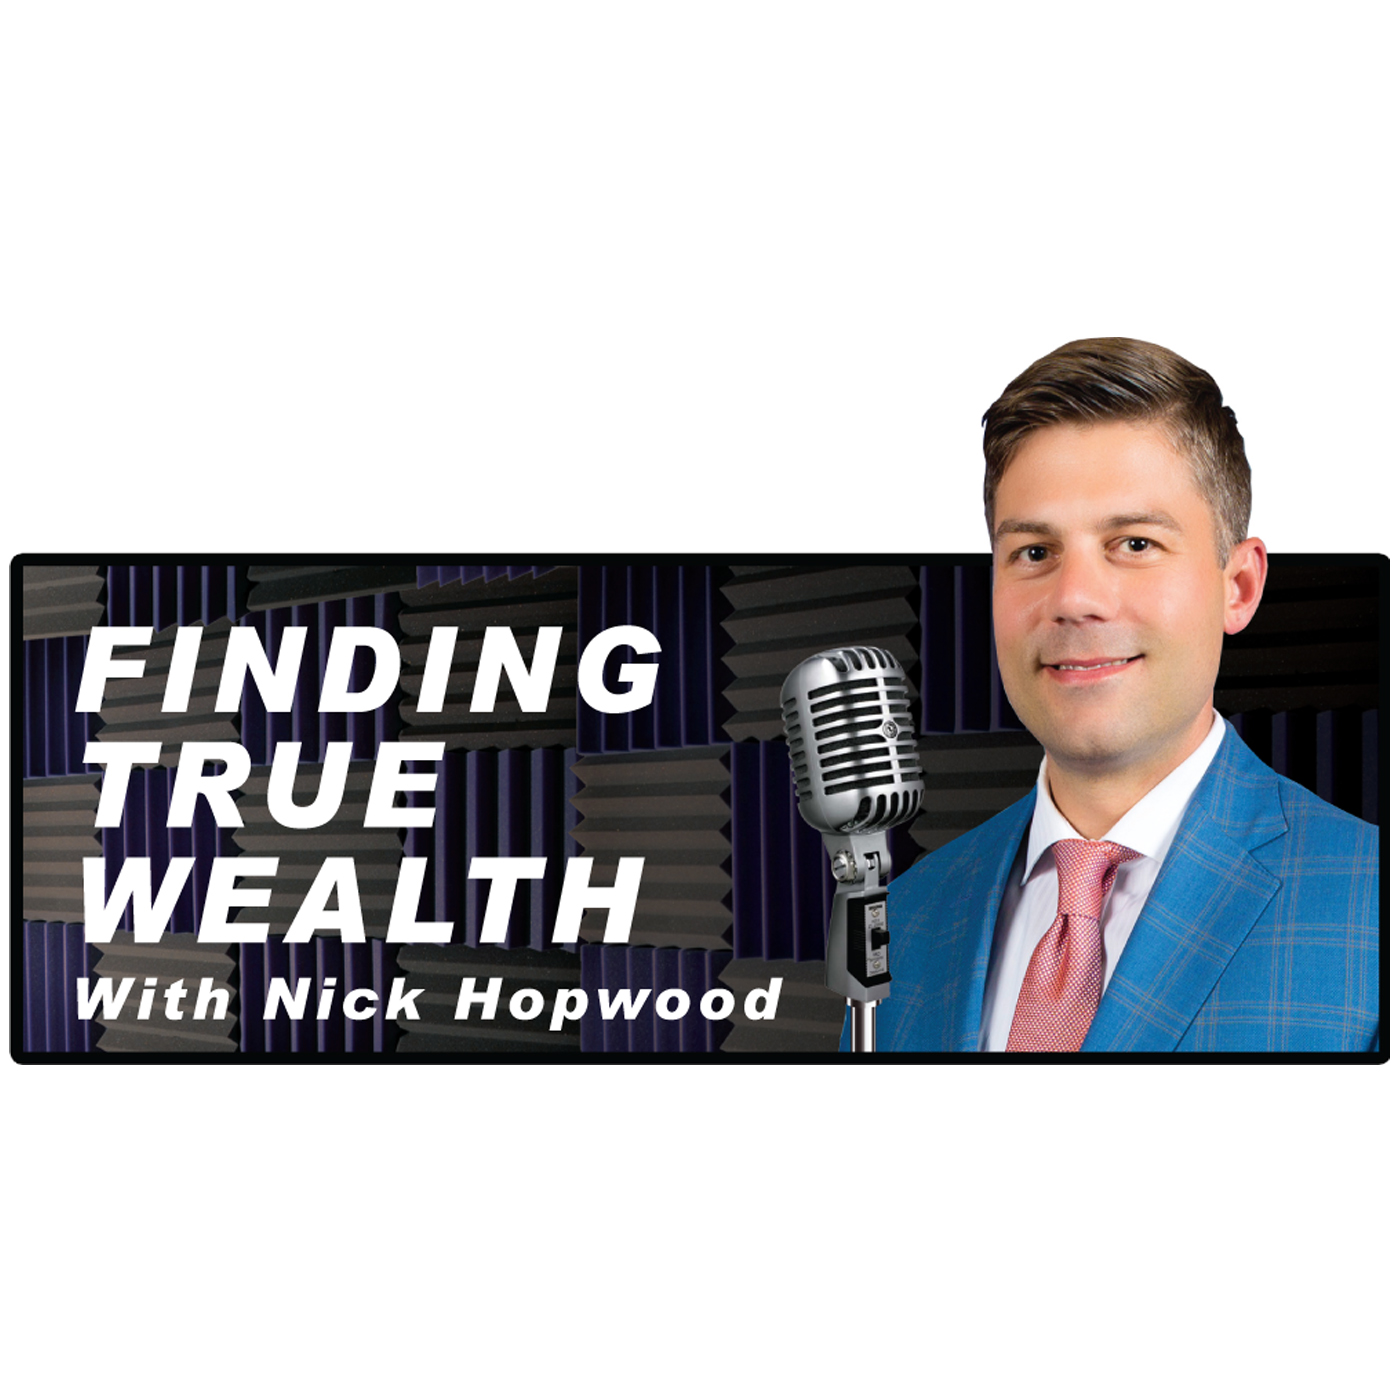 EP 039: Estate Planning Mistakes with Marc Wander of the Marc Wander Law Firm